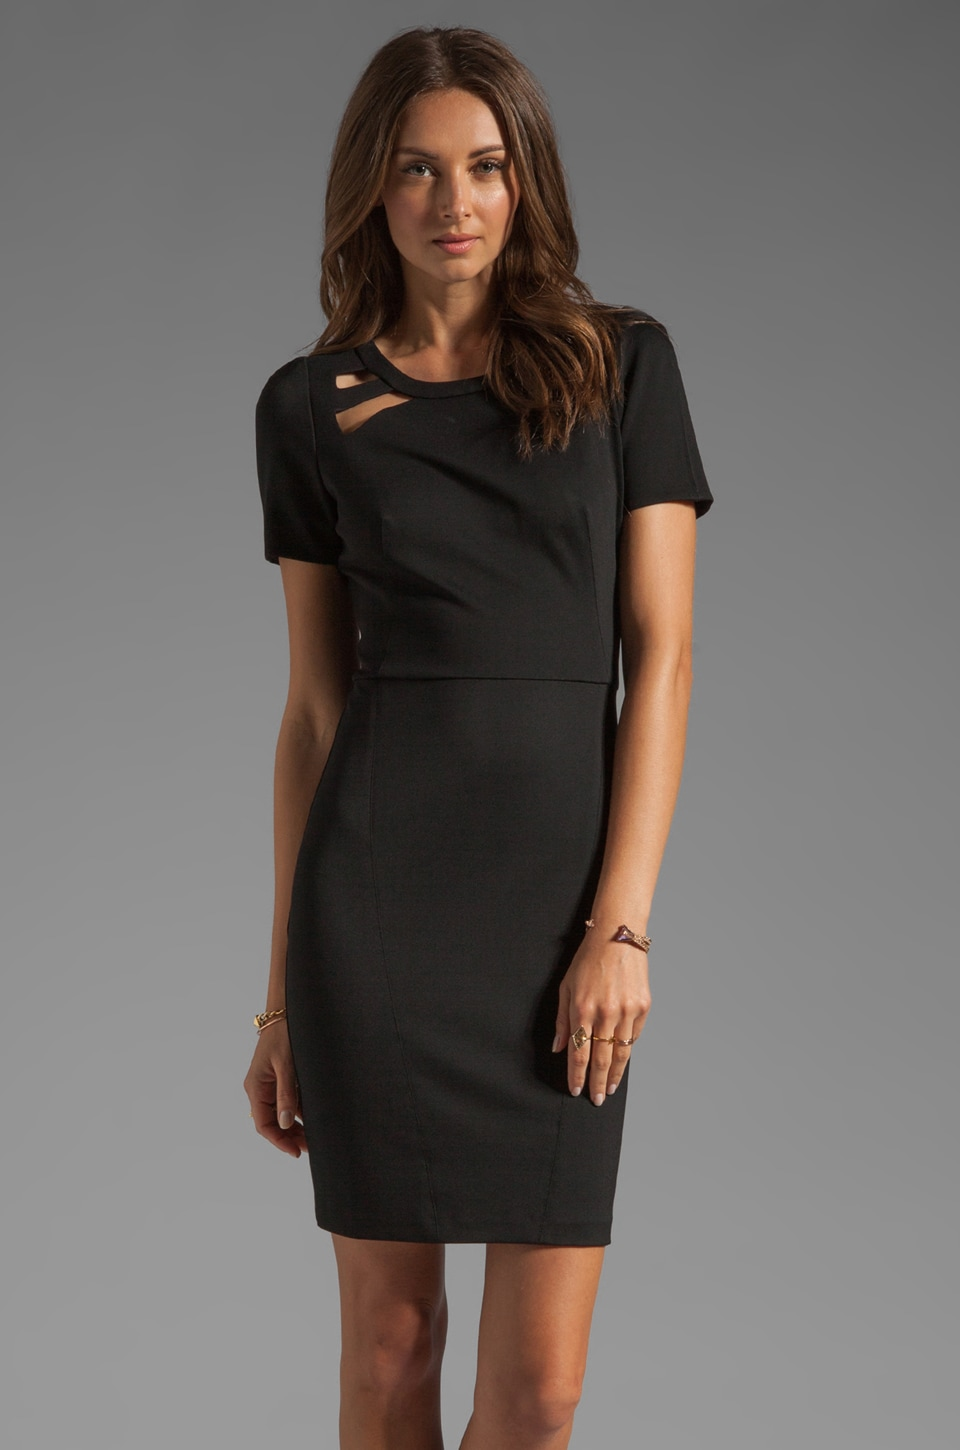 Halston Heritage Short Sleeve Sheath Dress With Shoulder Cut Out in Black